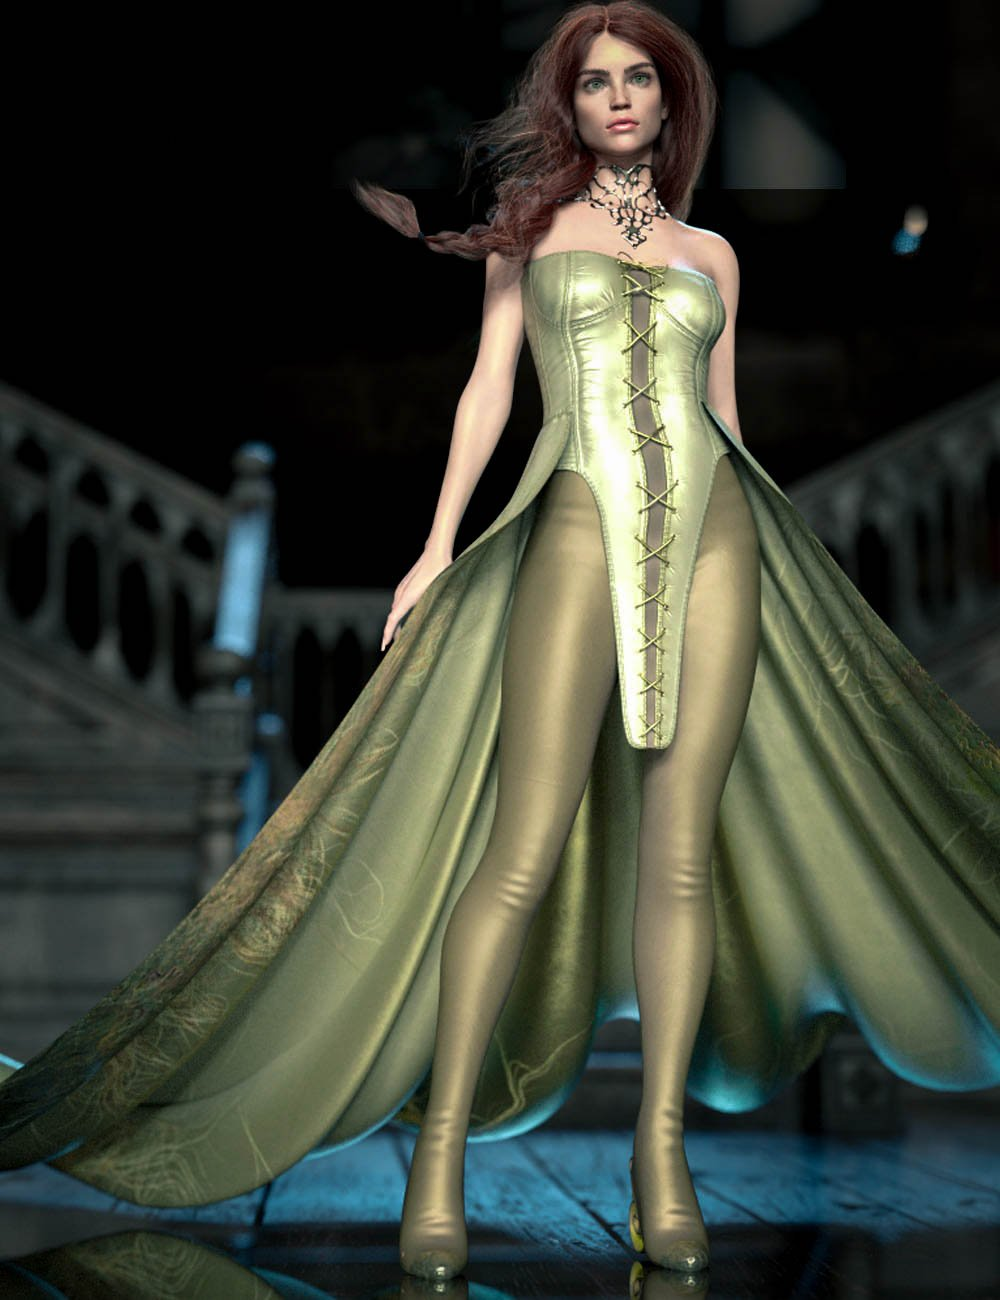 CB Sophia dForce Clothing Set for Genesis 8 and 8.1 Females by: CynderBlue, 3D Models by Daz 3D